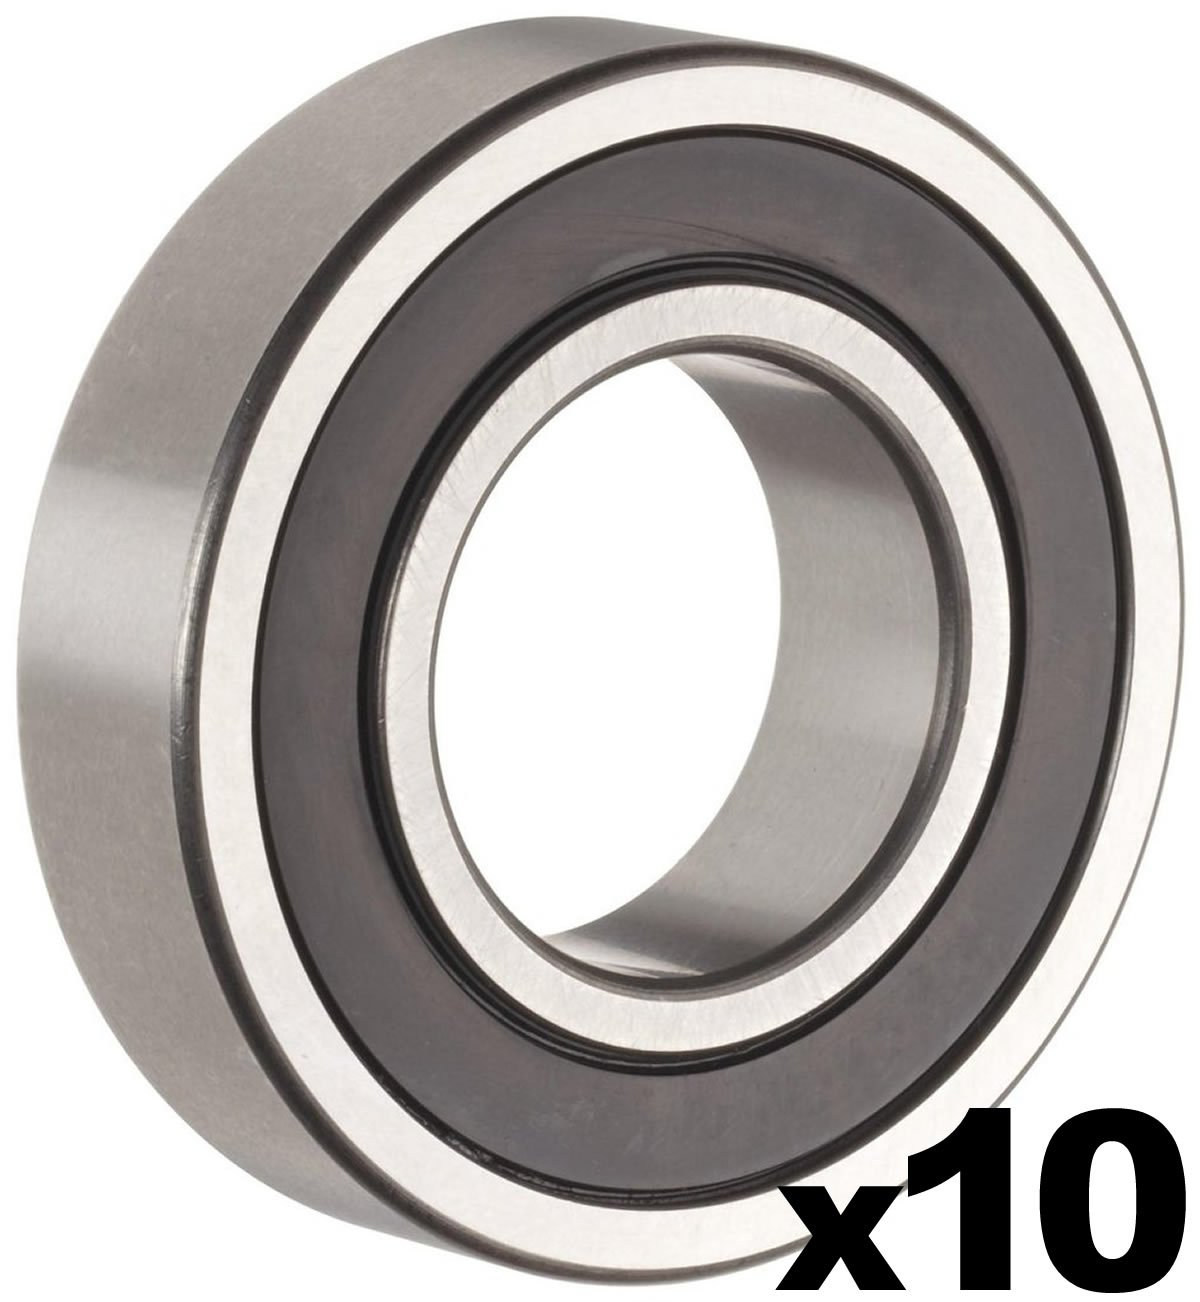 6203-2RS Sealed Bearing - 17x40x12 - Lubricated - Chrome Steel (10 PCS)